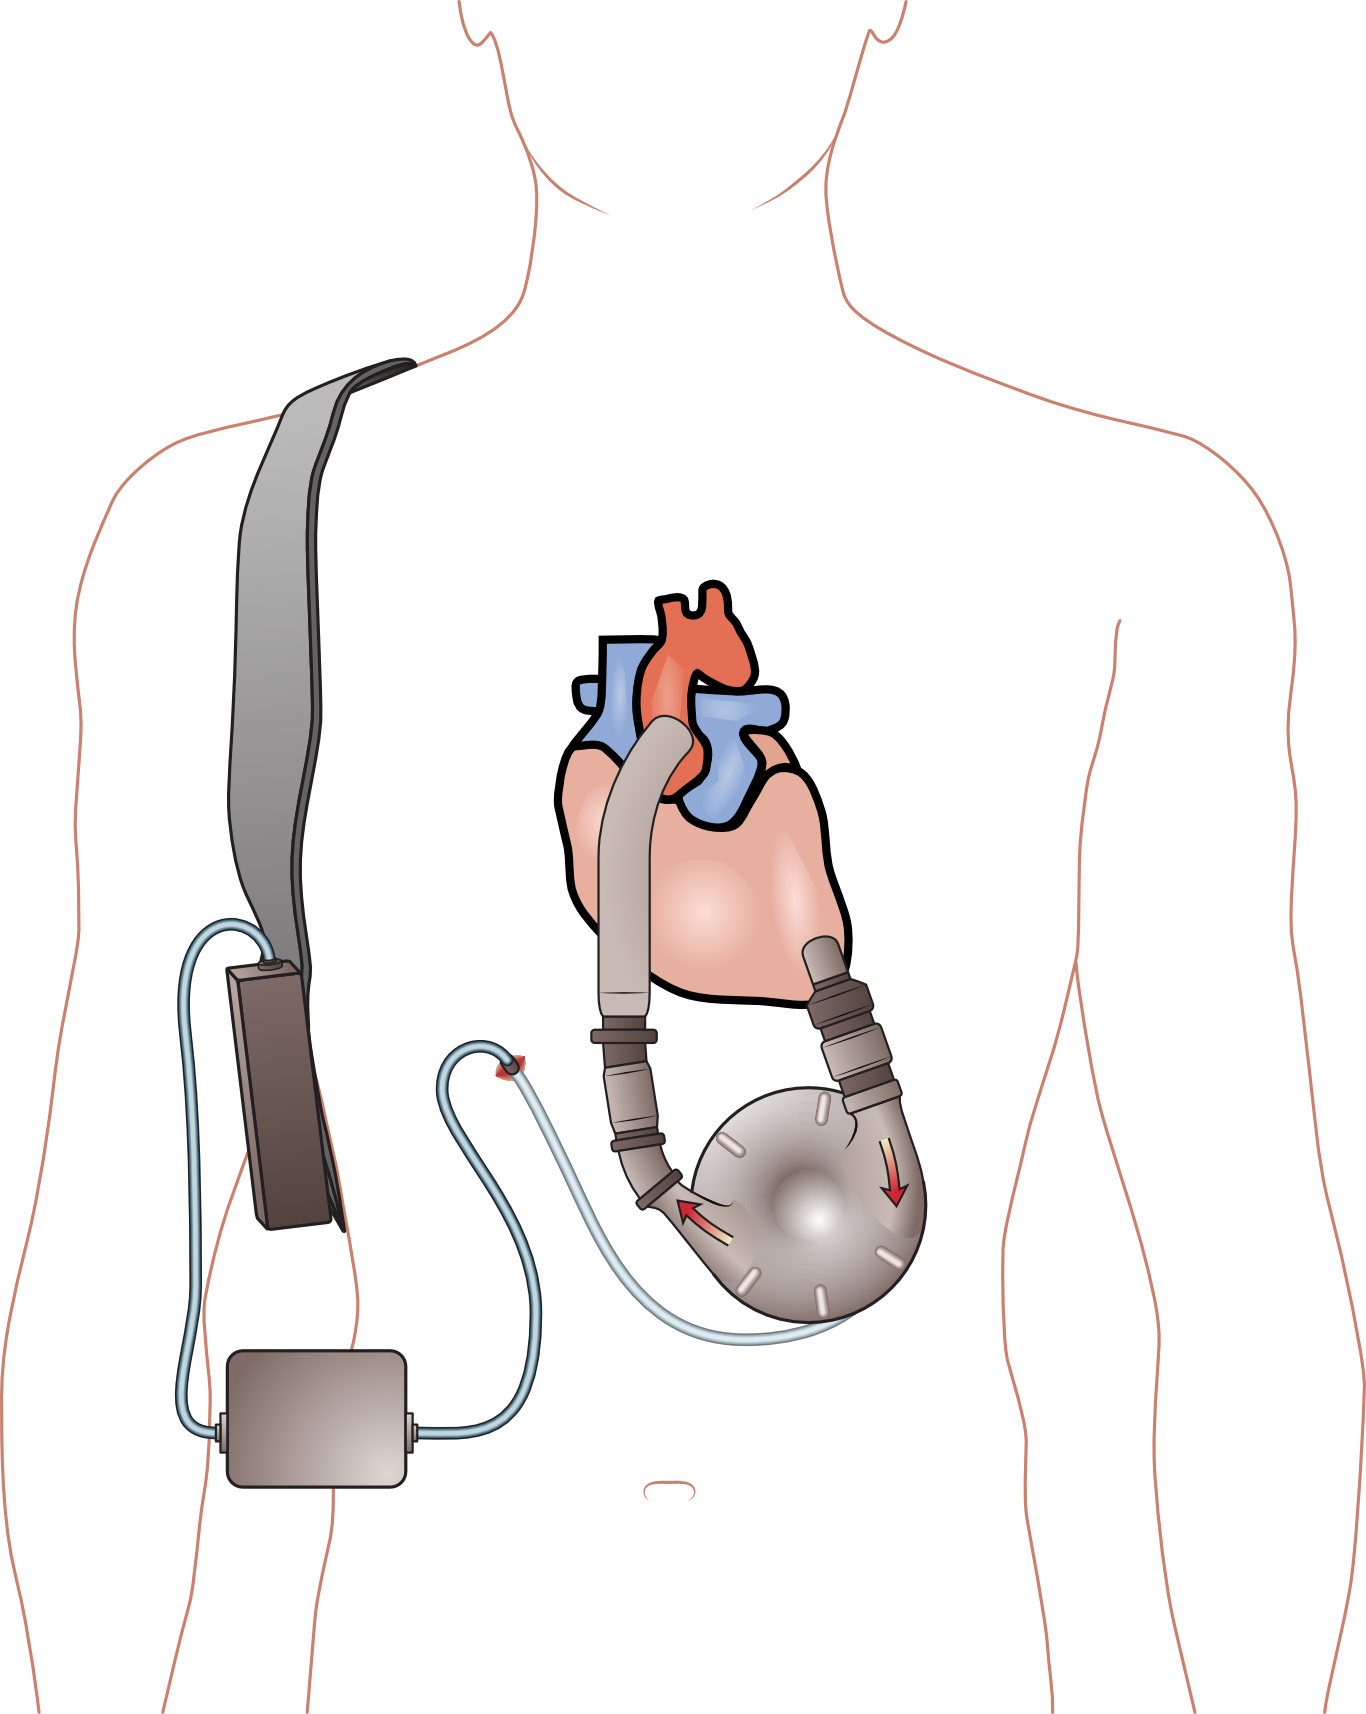 Ventricular Assist Device Wiki Ventricular Assist Device Png